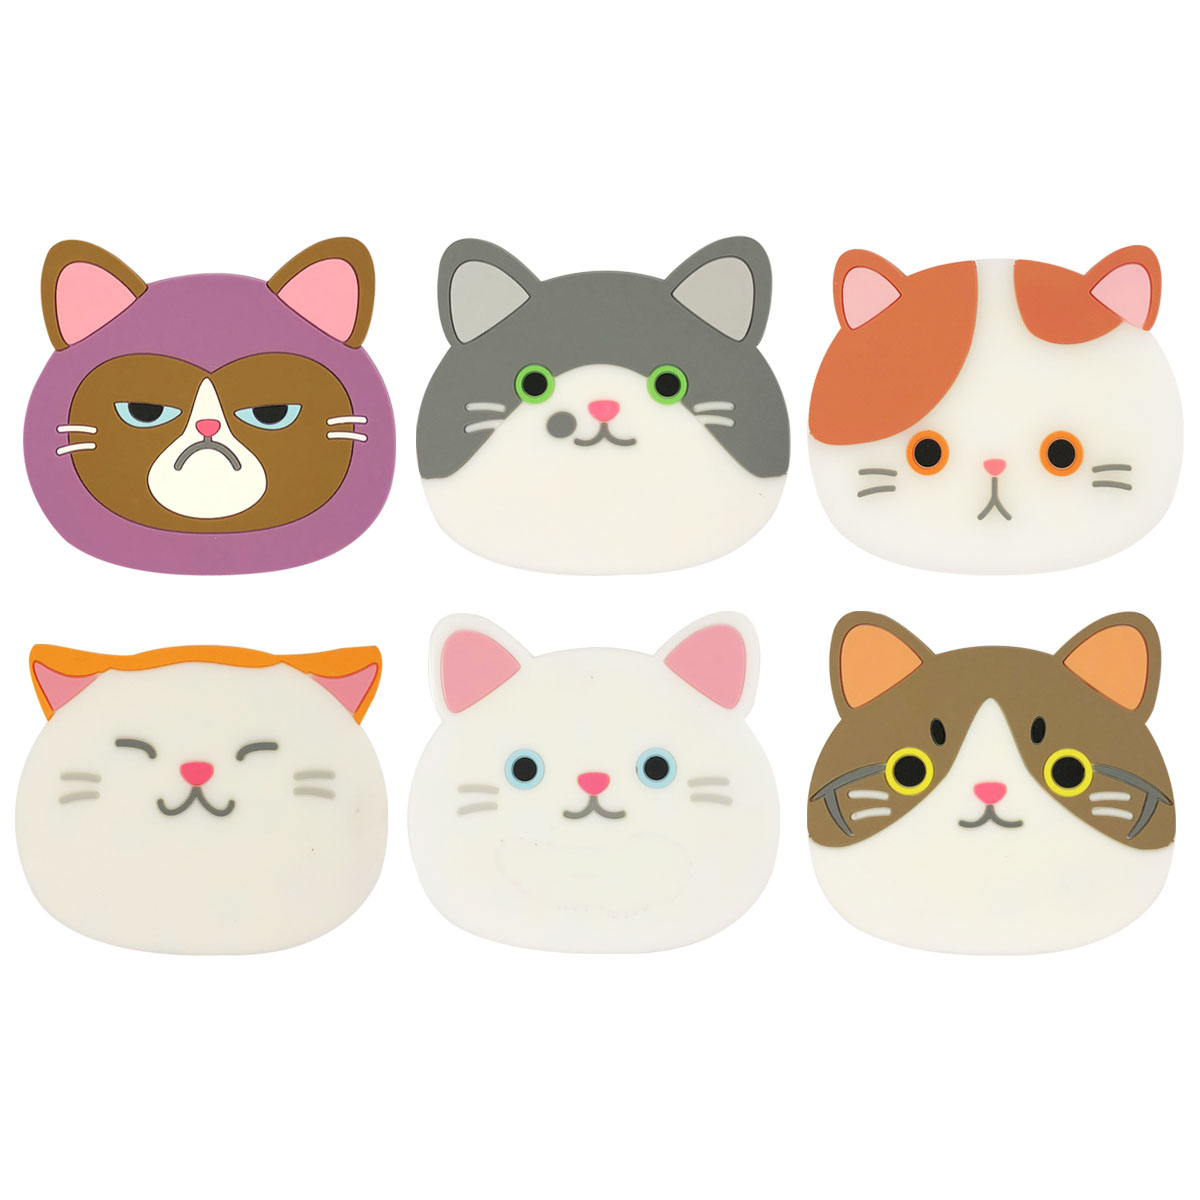 Wrapables Silicone Cute Cat Coasters for Glasses, Cups, and Drinks (Set of 6)